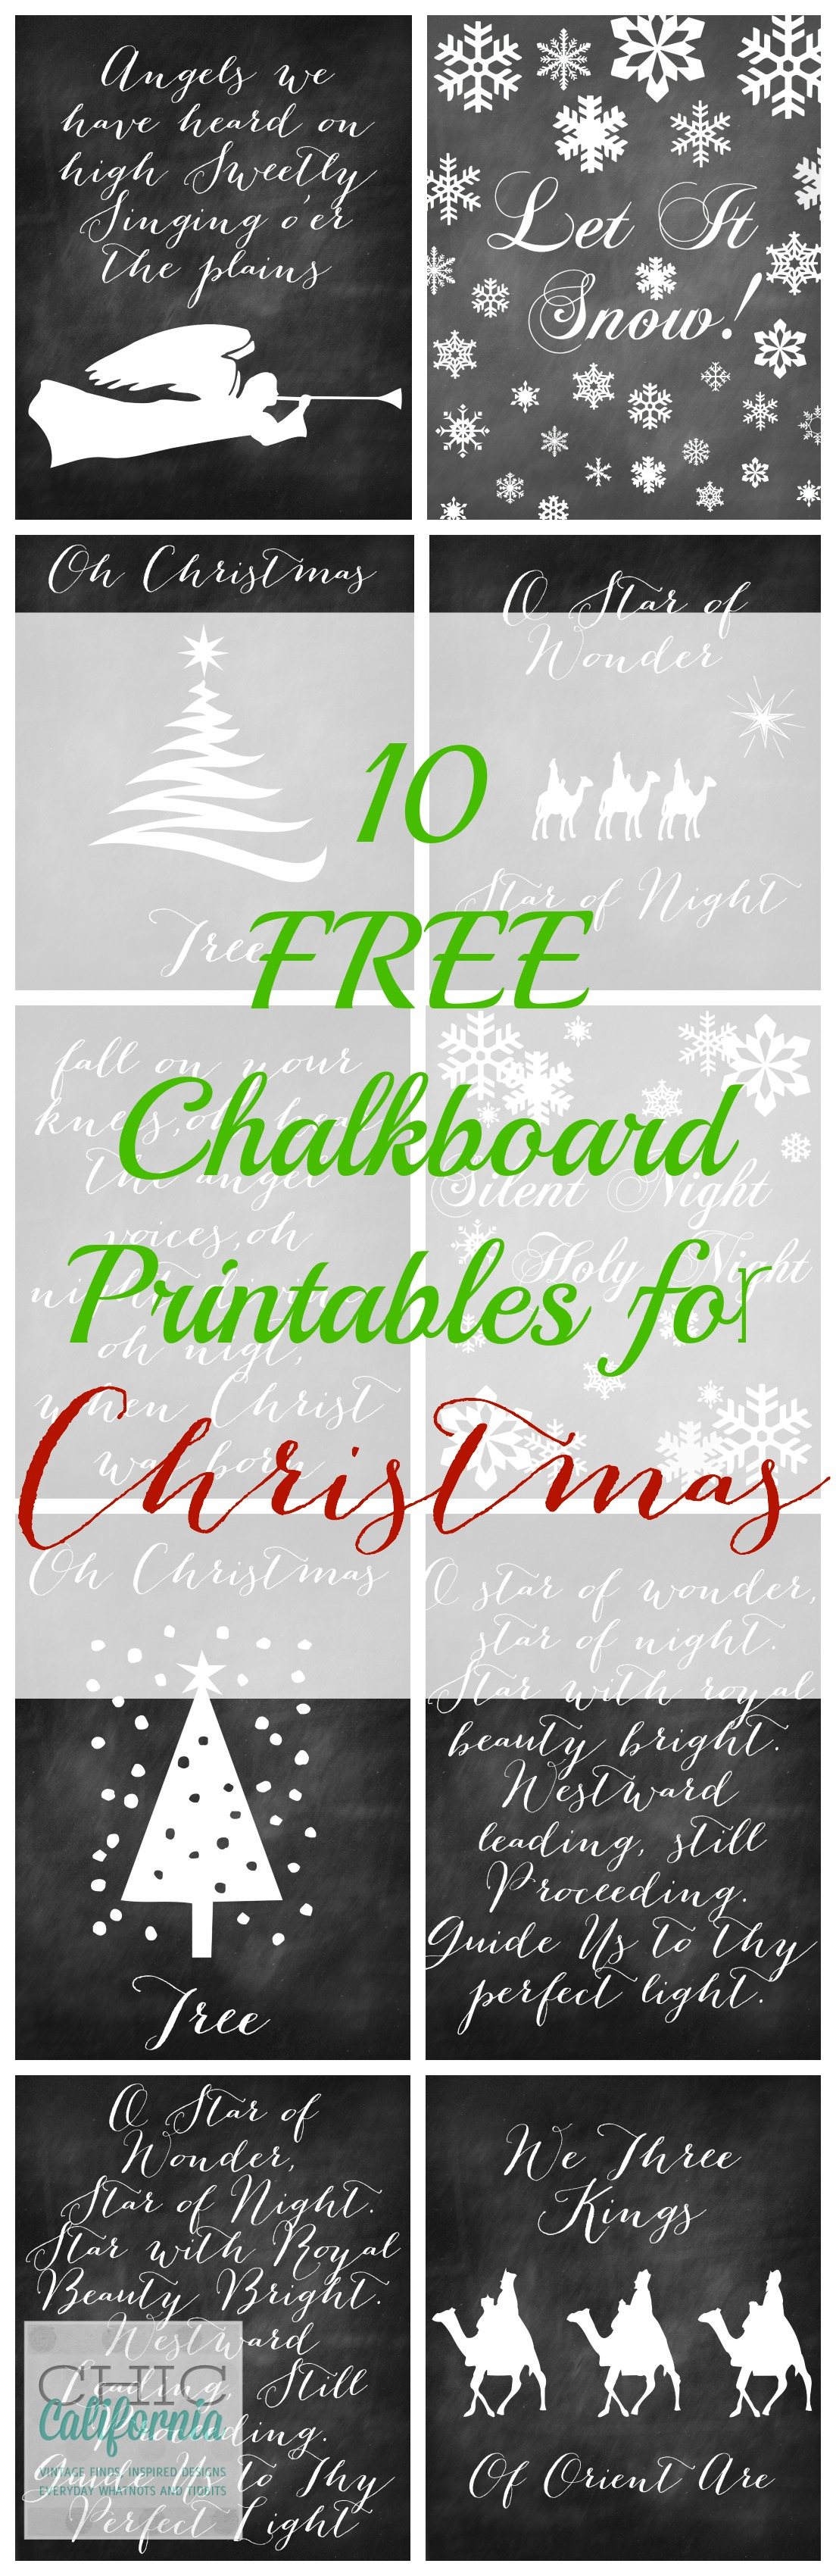 10 Free Chalkboard Printables for Chrismtas